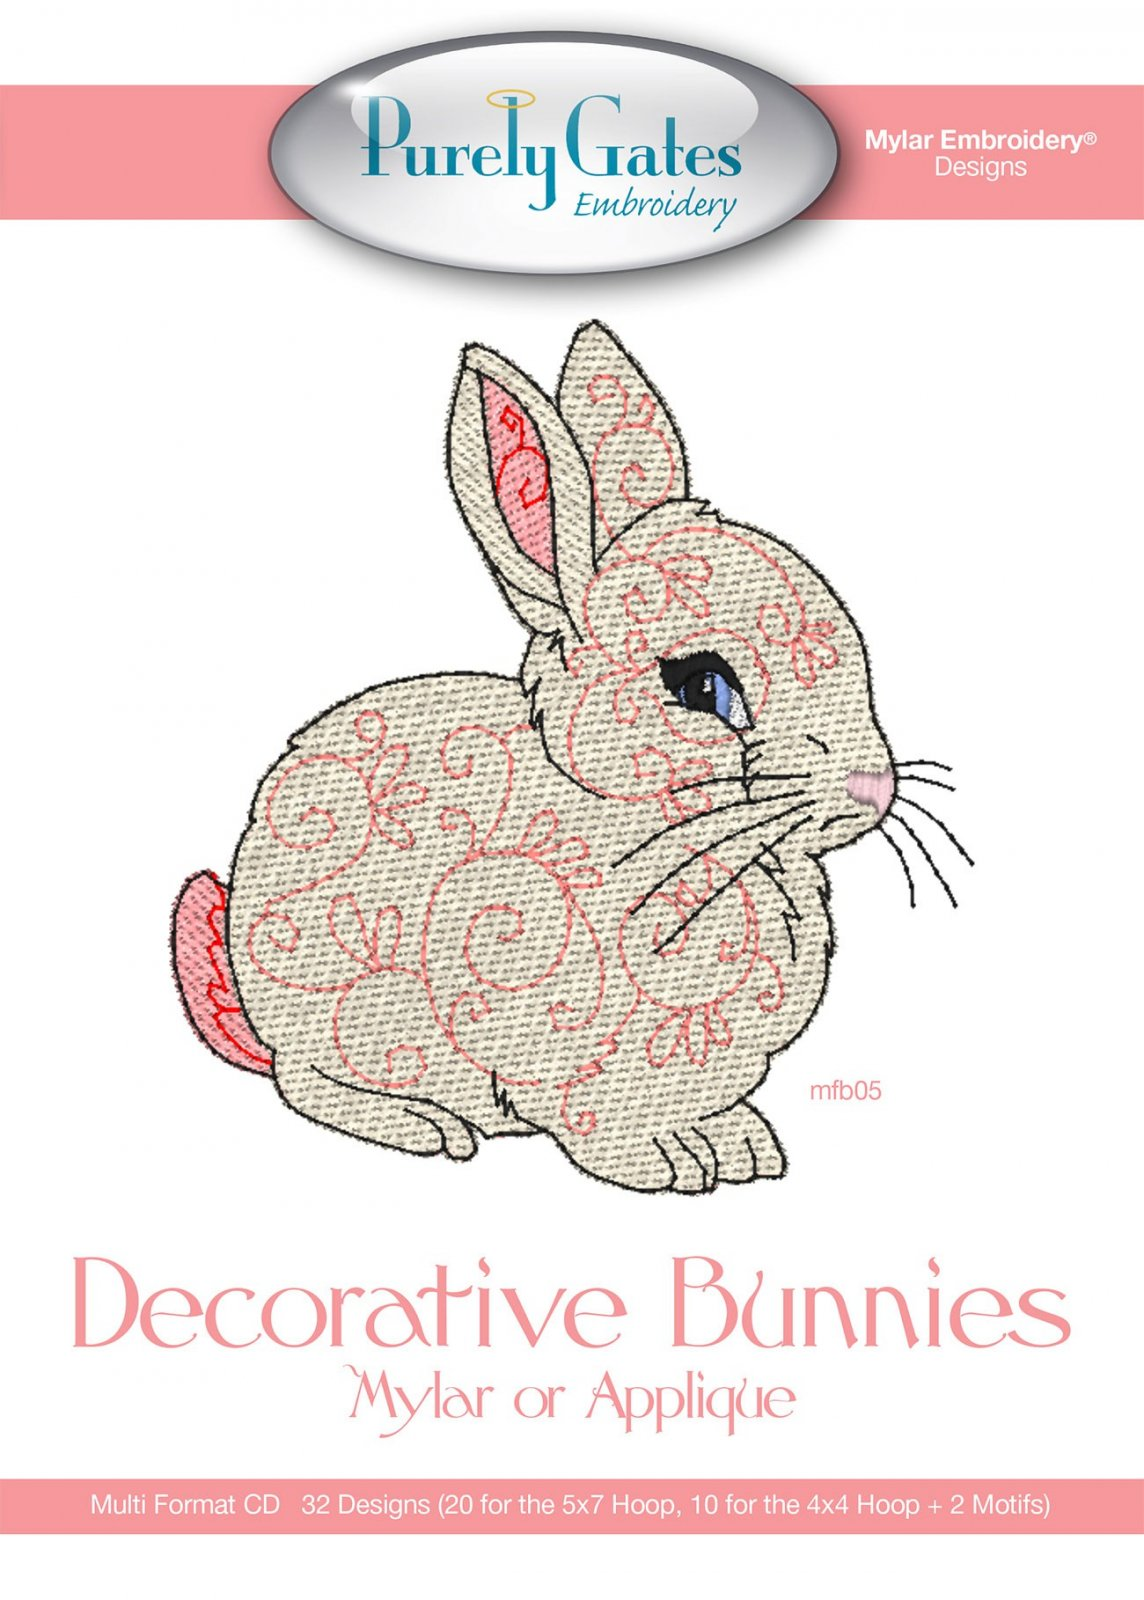 CD Decorative Bunnies Mylar or Applique Embroidery